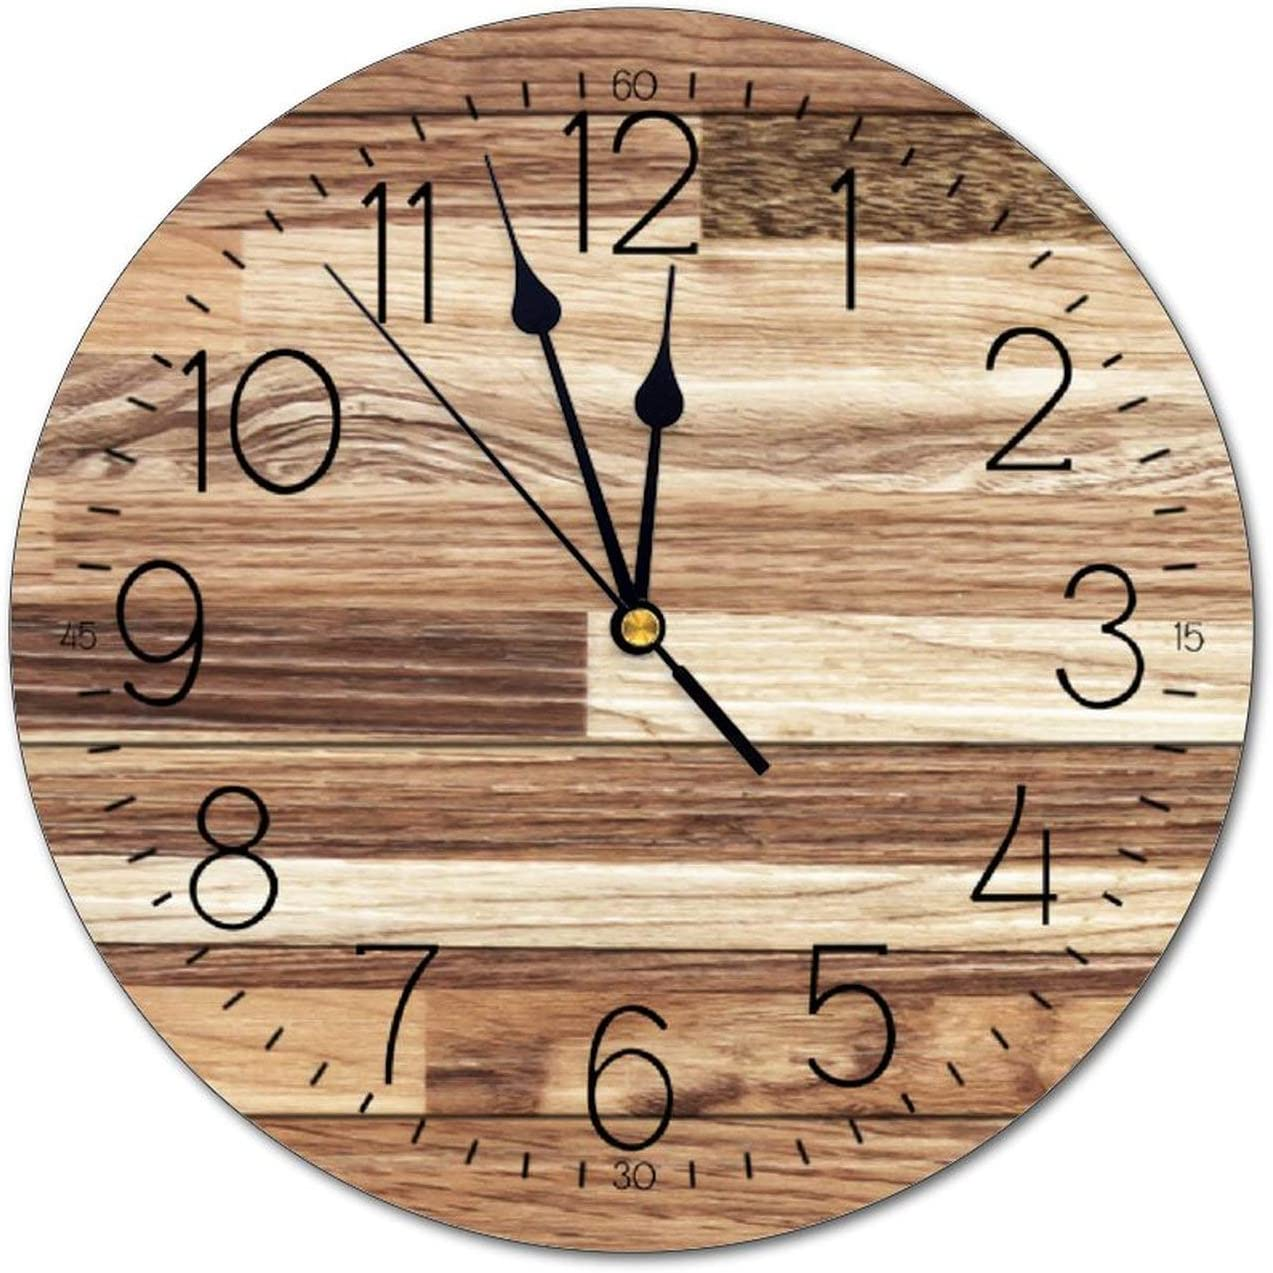 Home Decor Vintage Natural Color Wood Plank big Wall Clock 12 Inch Silent Non Ticking Desk Clocks Modern Art Wall Decorative for Bedroom Living Room Kitchen Home Decor, Quality Quartz Battery Operated